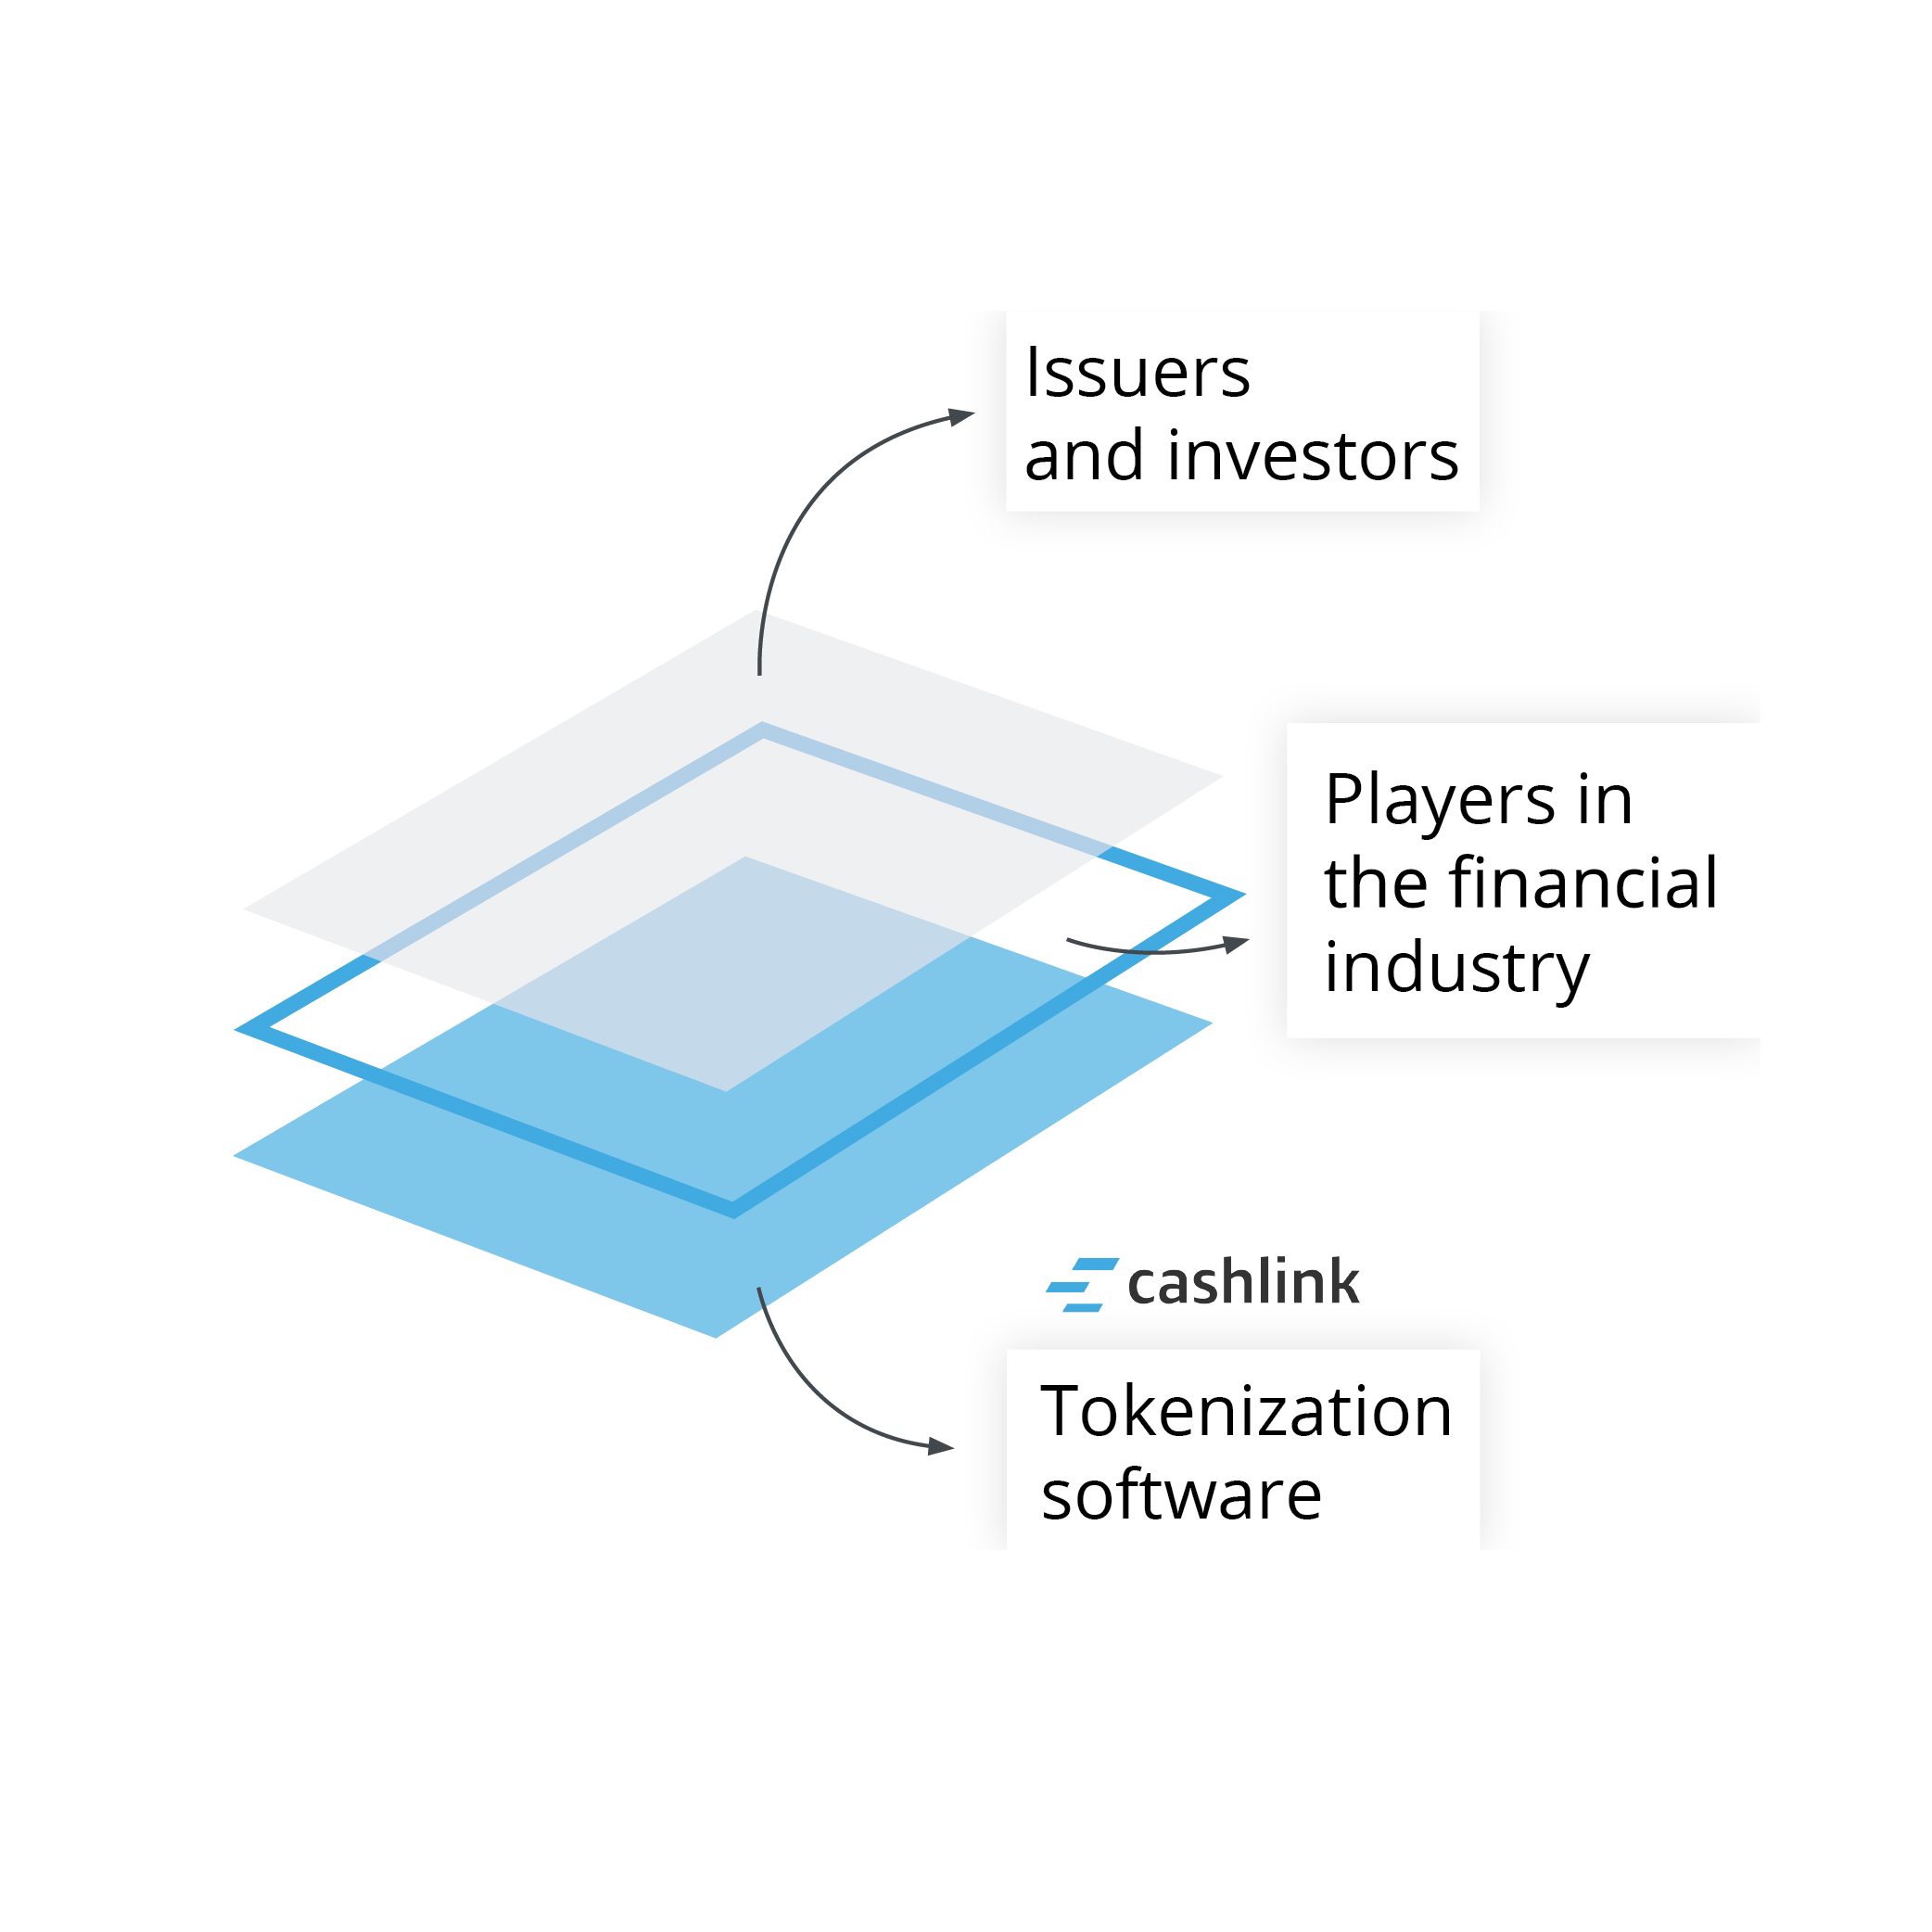 Three Layer Graphic: Tokanization software by cashlink, Players in the financial industry, Issuers and investors